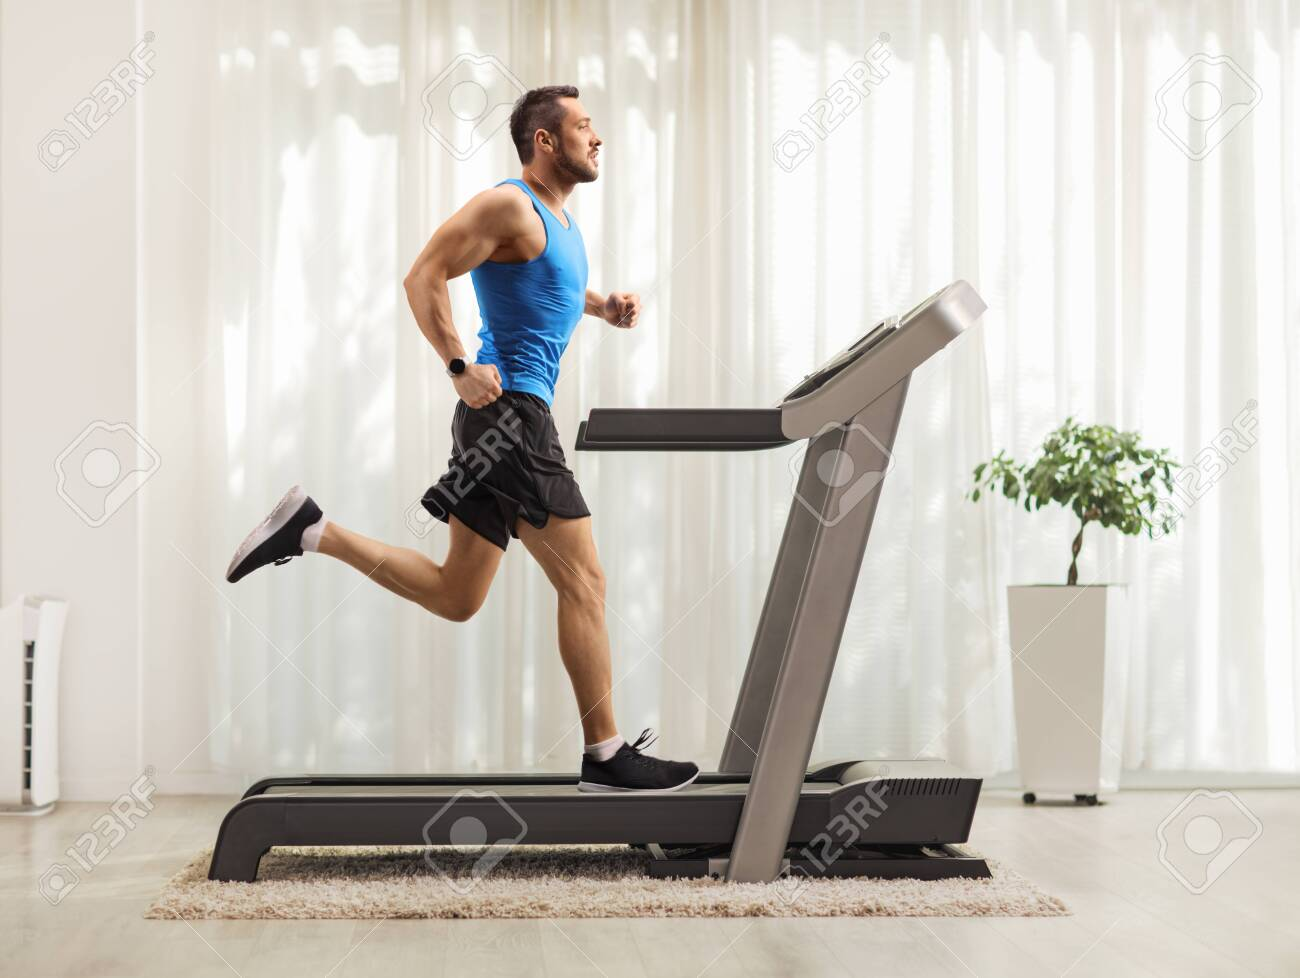 Full length profile shot of a young man running on a treadmill at home - 129384973